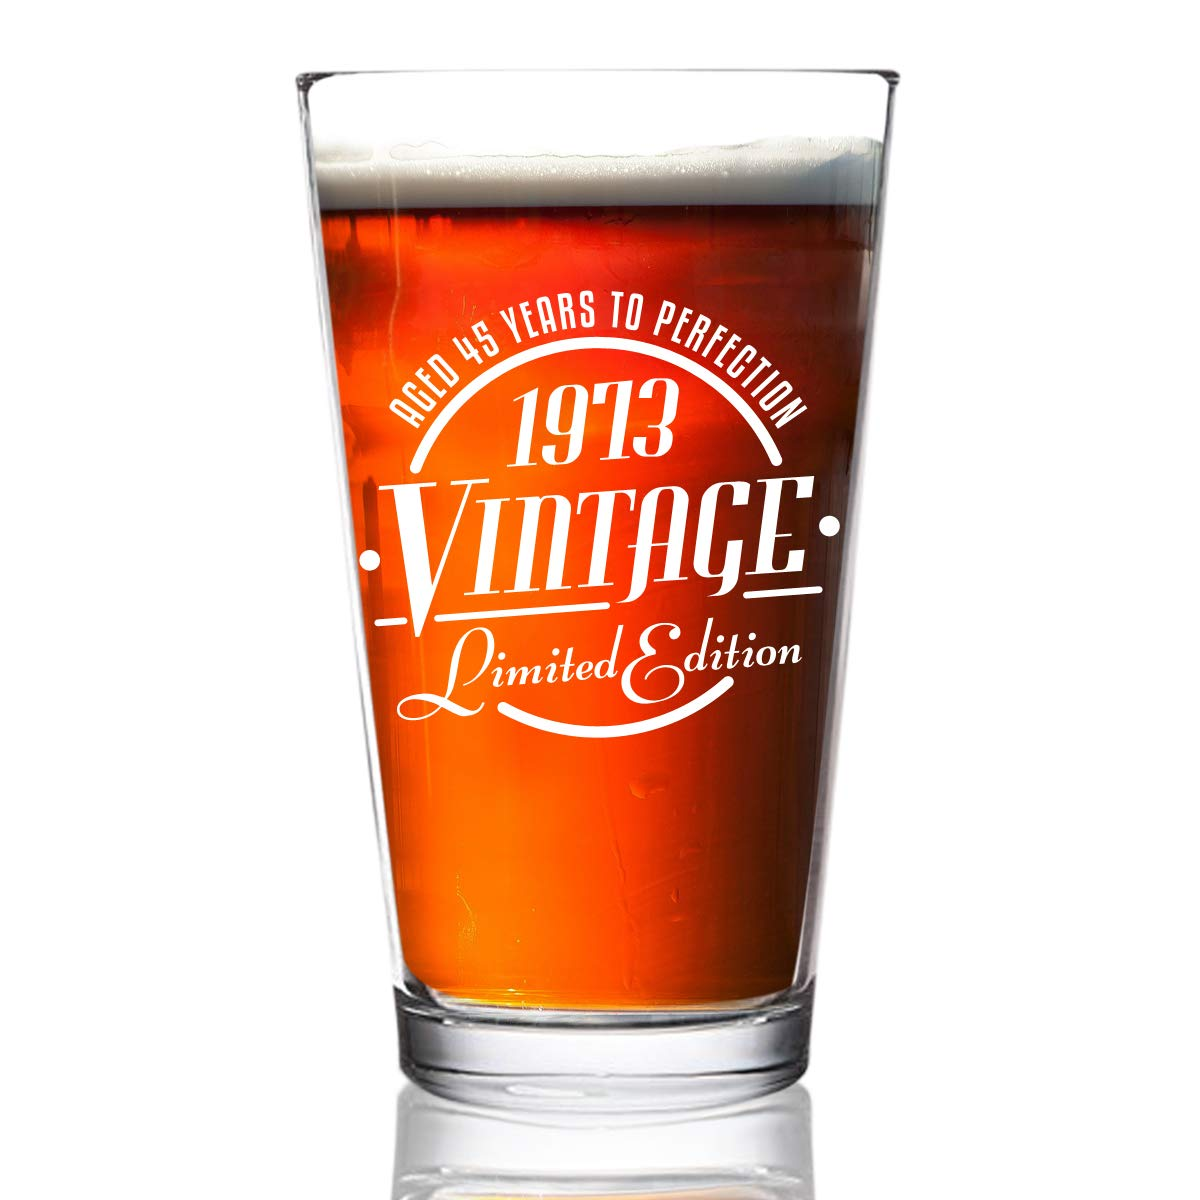 1988 Vintage Edition 30th Birthday Beer Glass for Men and Women (30th Anniversary) 16 oz- Elegant Happy Birthday Pint Beer Glasses for Craft Beer | Classic Birthday Gift, Reunion Gift for Him or Her